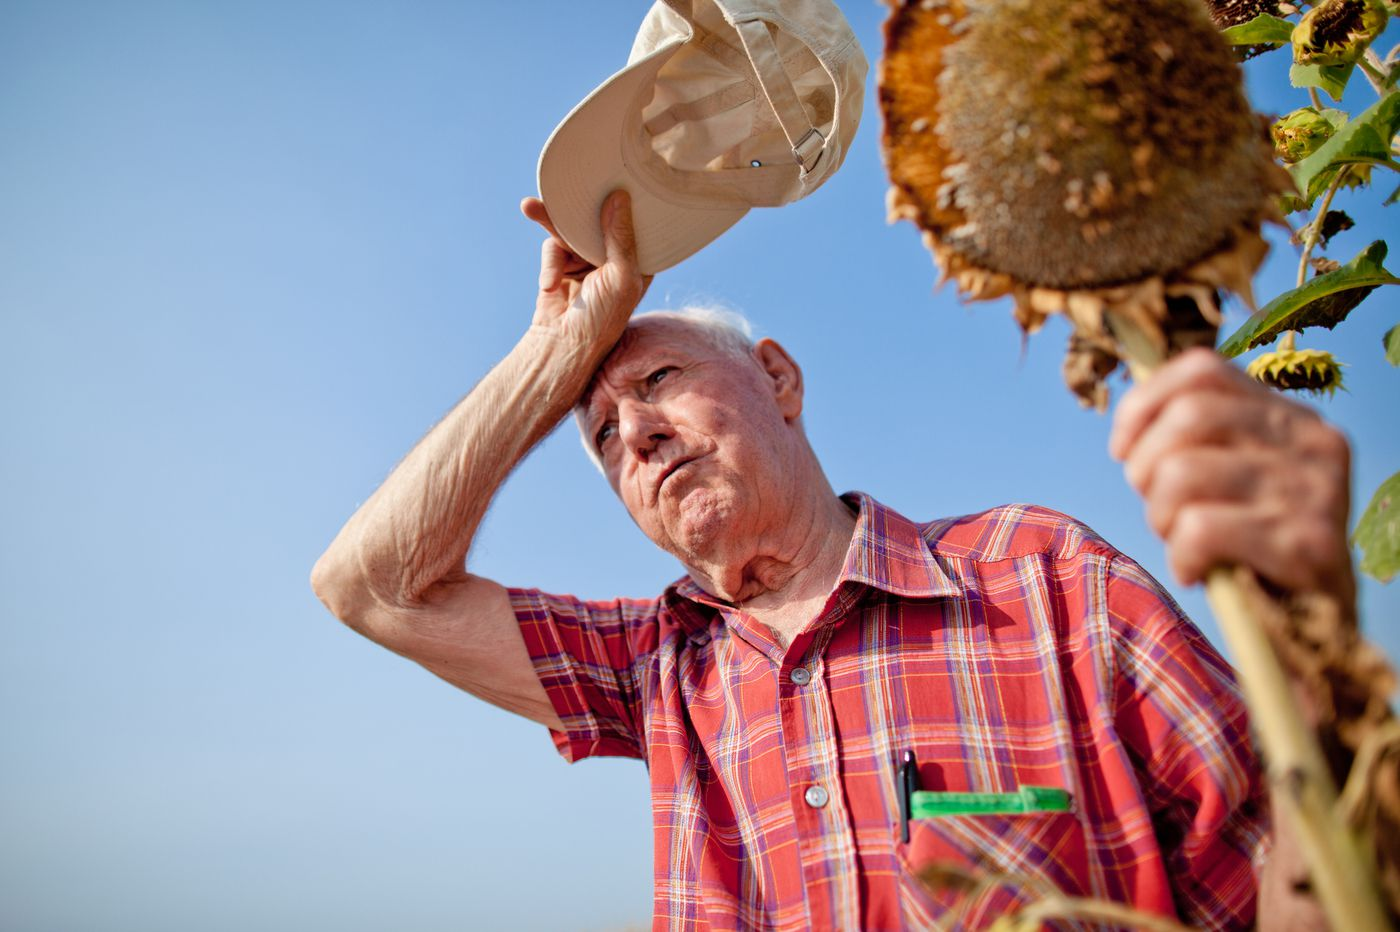 How can seniors avoid heat-related health dangers this summer?